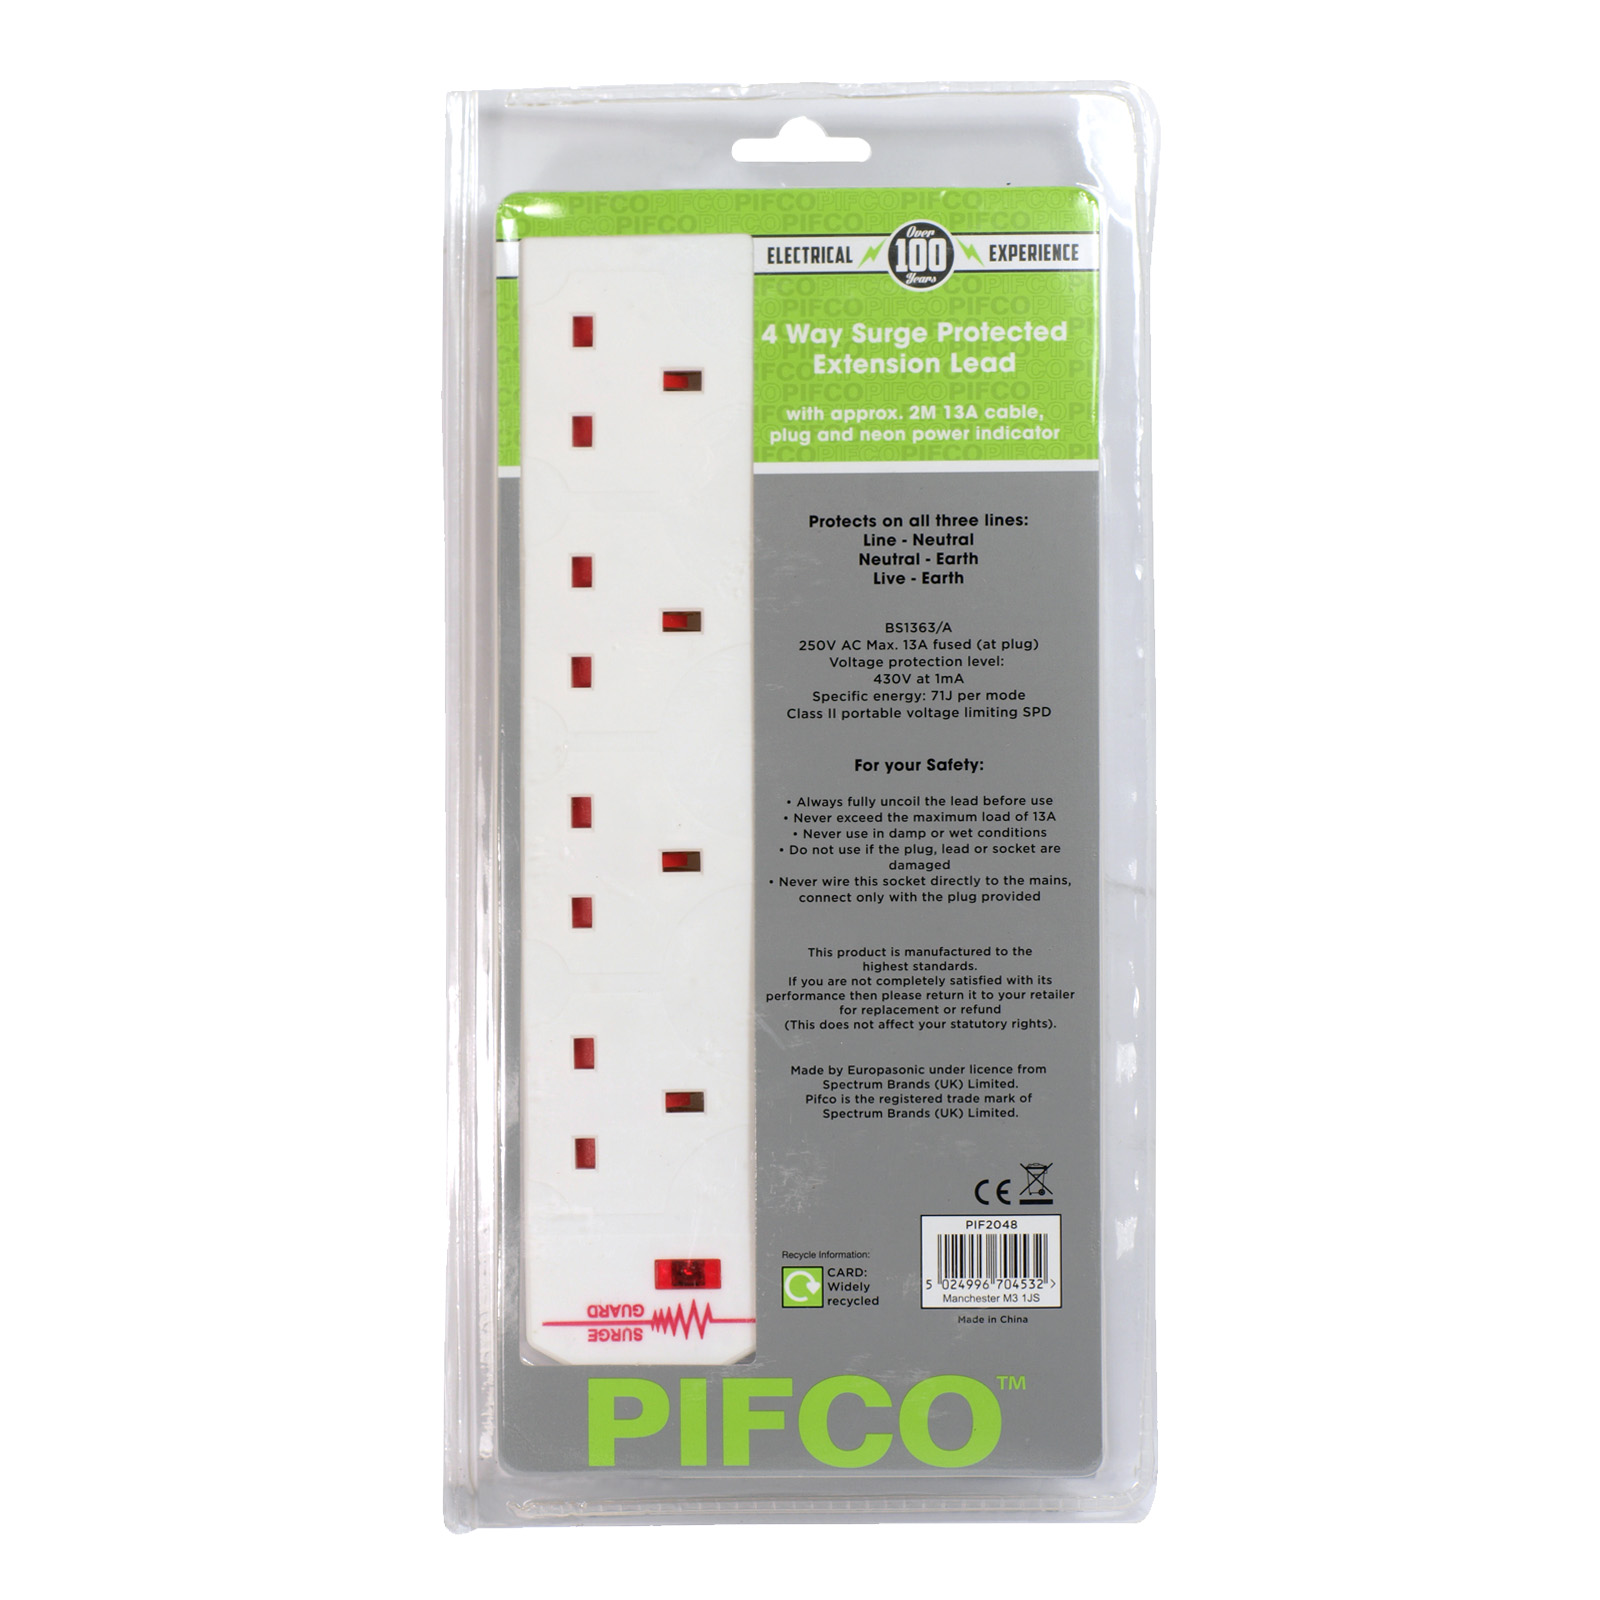 PIFCO EXTENSION+SURGE 4WAY 13AMP 2M